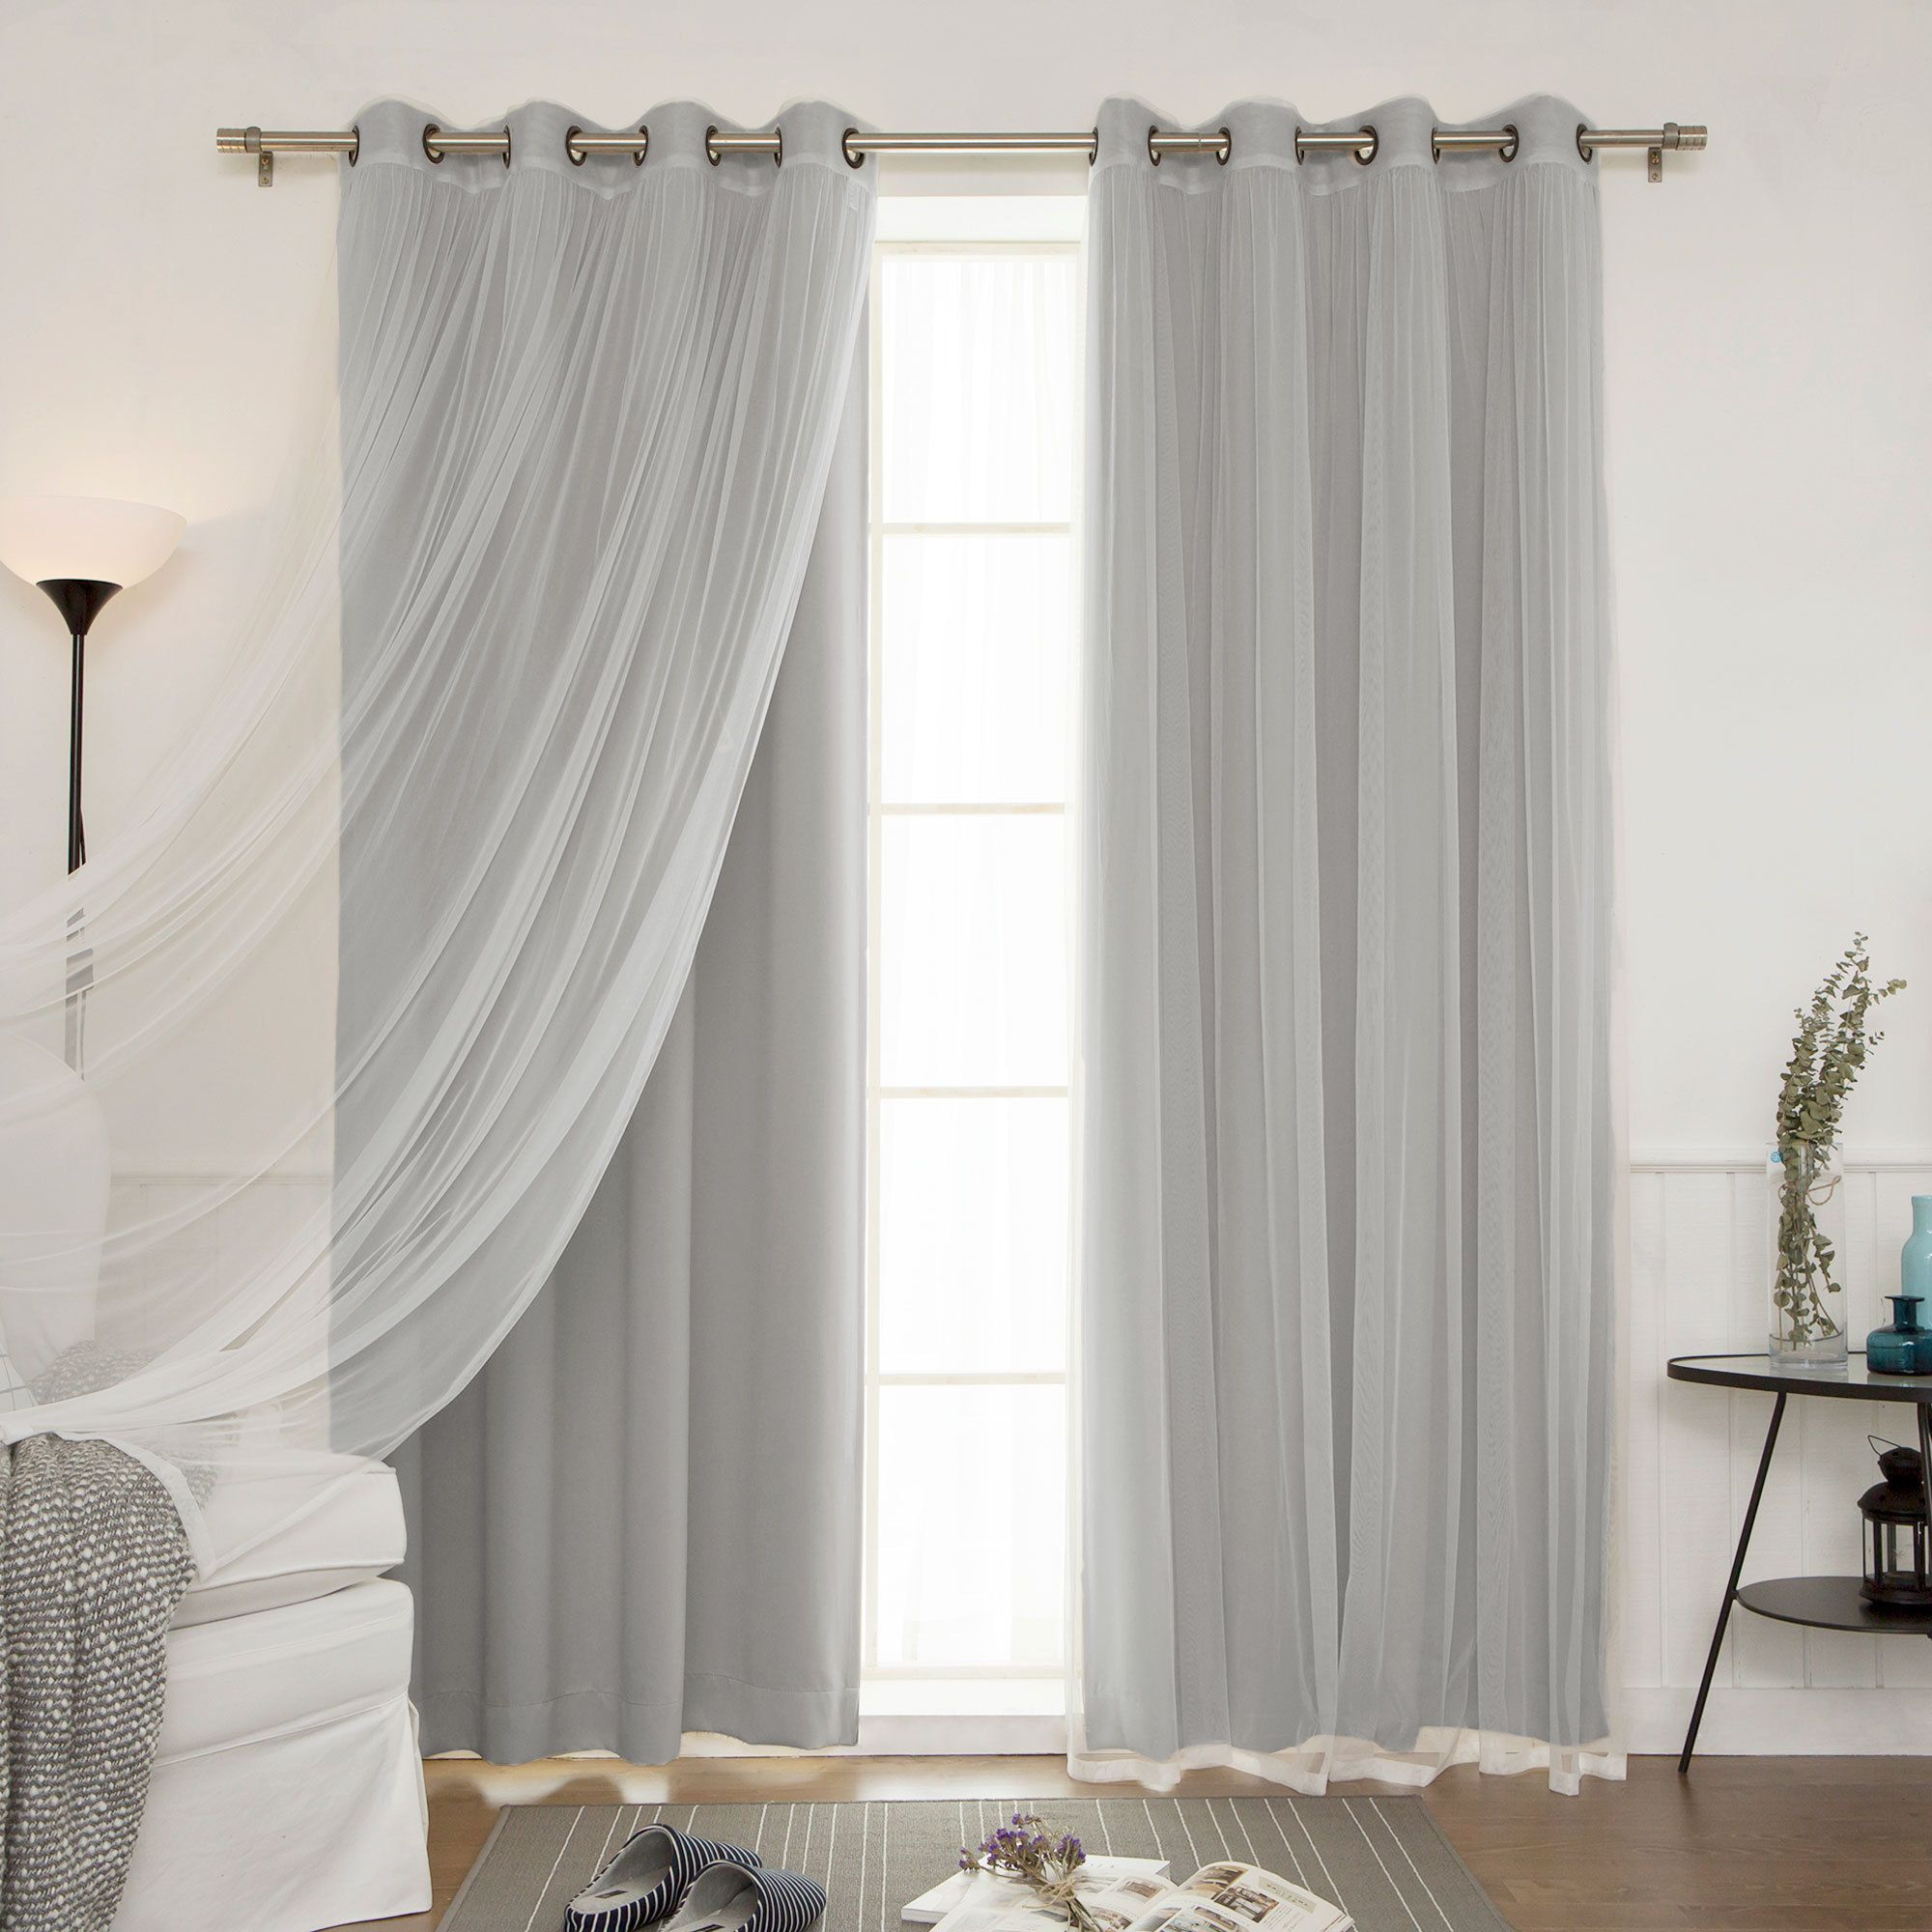 stirring full goods com home amazon at norton storehome shores store bathroom curtainshome curtains of curtain size ideas shower image